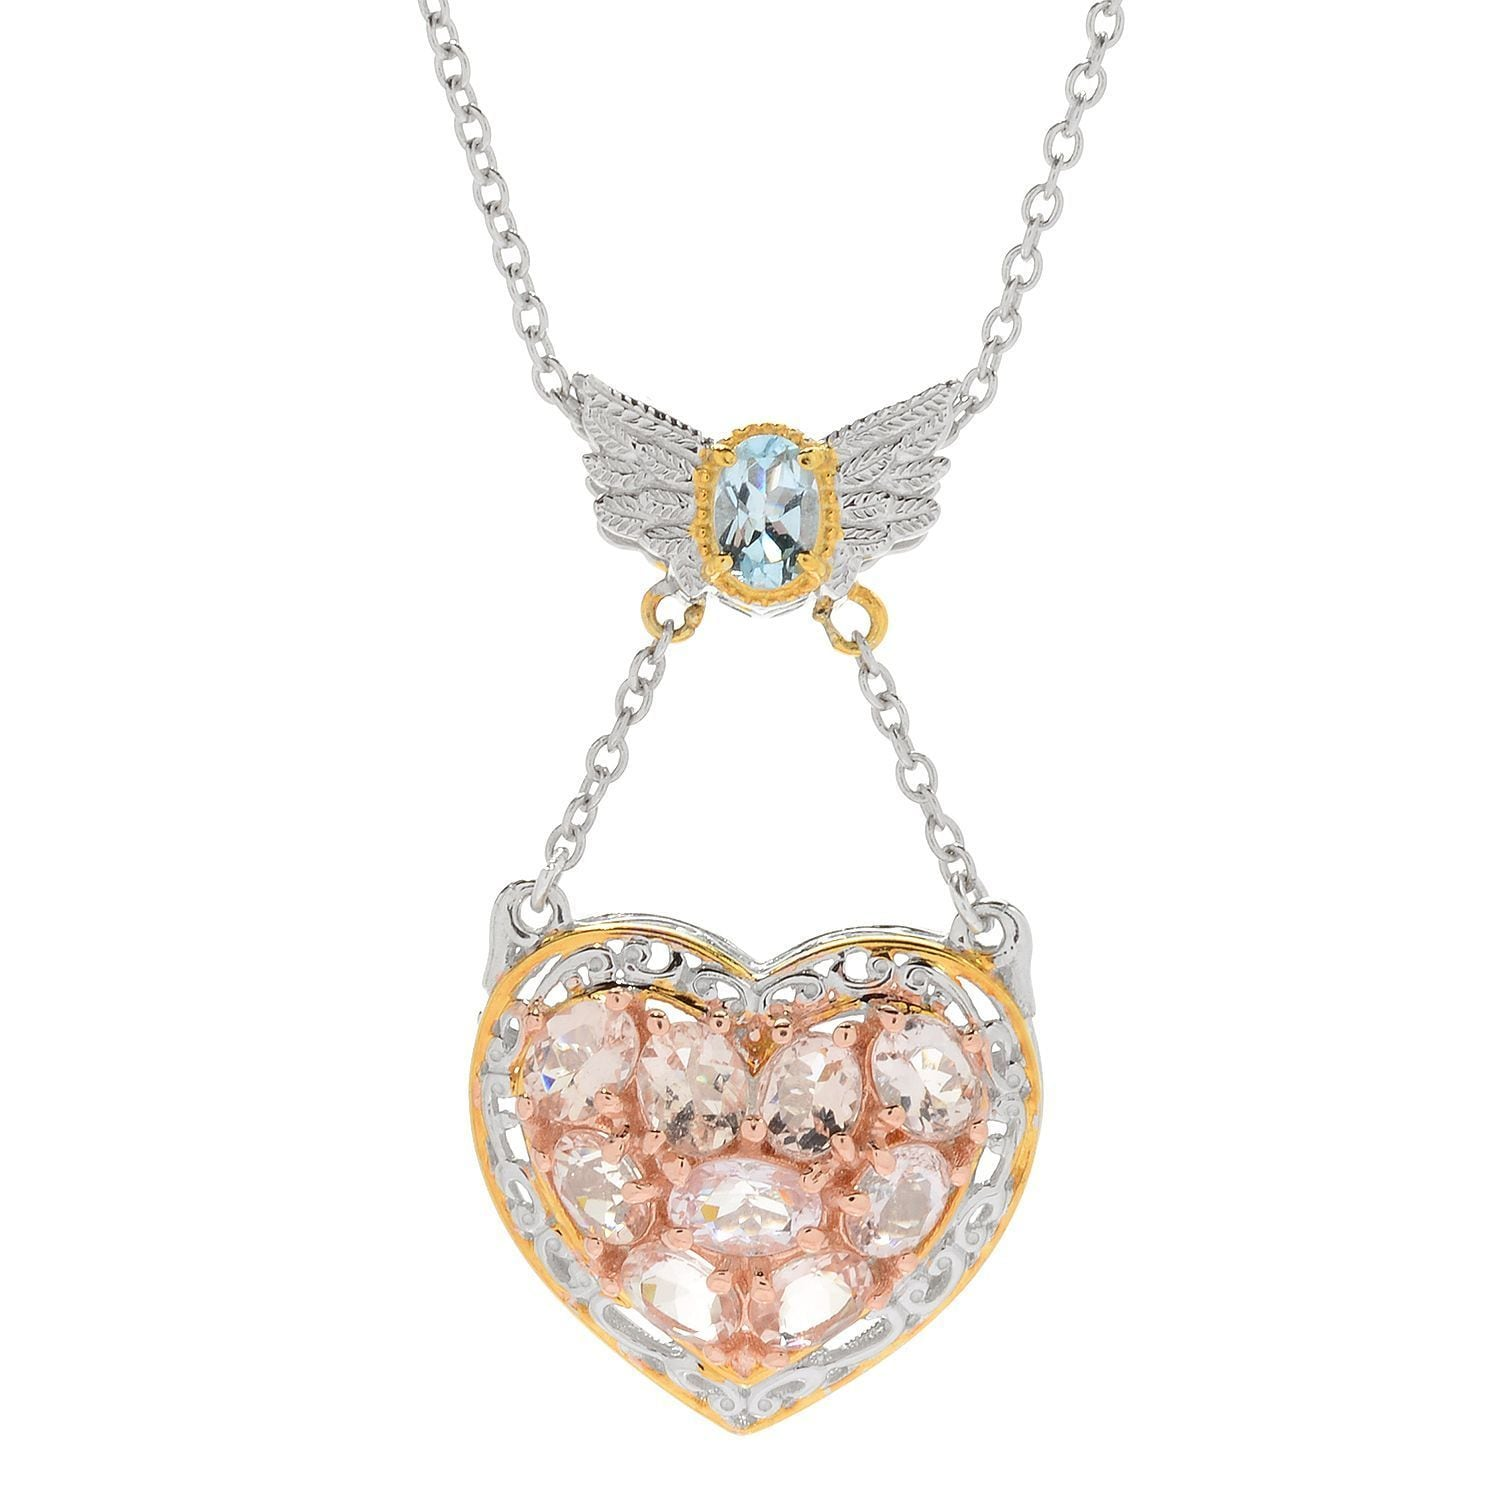 Michael valitutti palladium silver morganite aquamarine angel wing michael valitutti palladium silver morganite aquamarine angel wing heart pendant free shipping today overstock 21124717 aloadofball Image collections